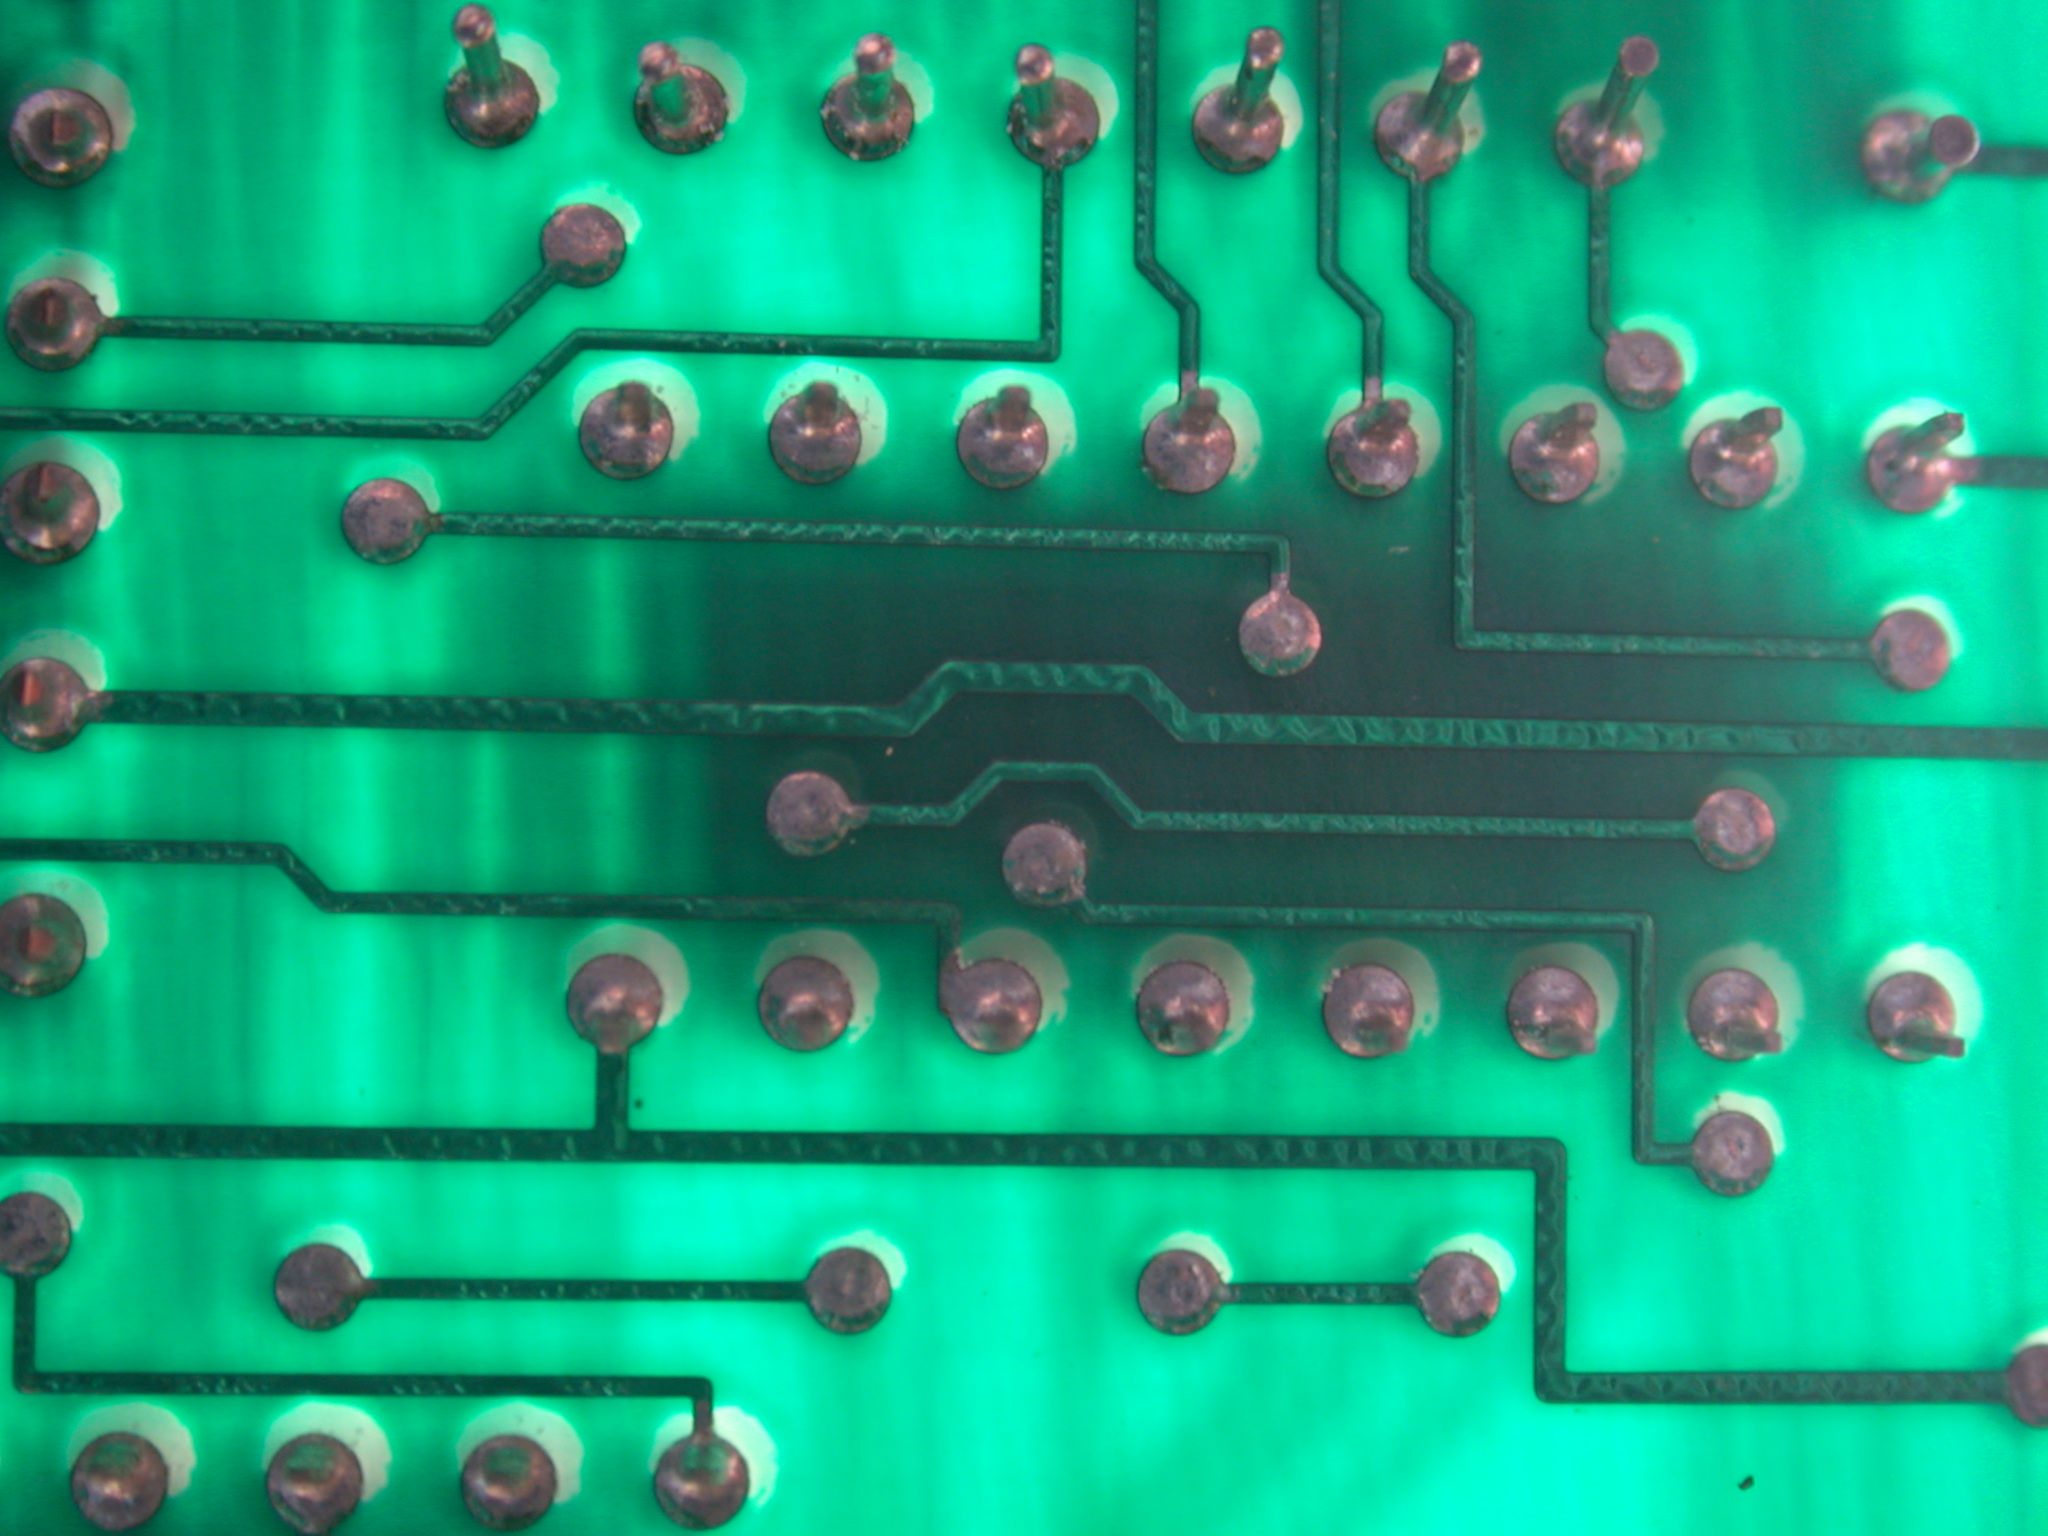 image.php?image=b19objects_circuits054.j